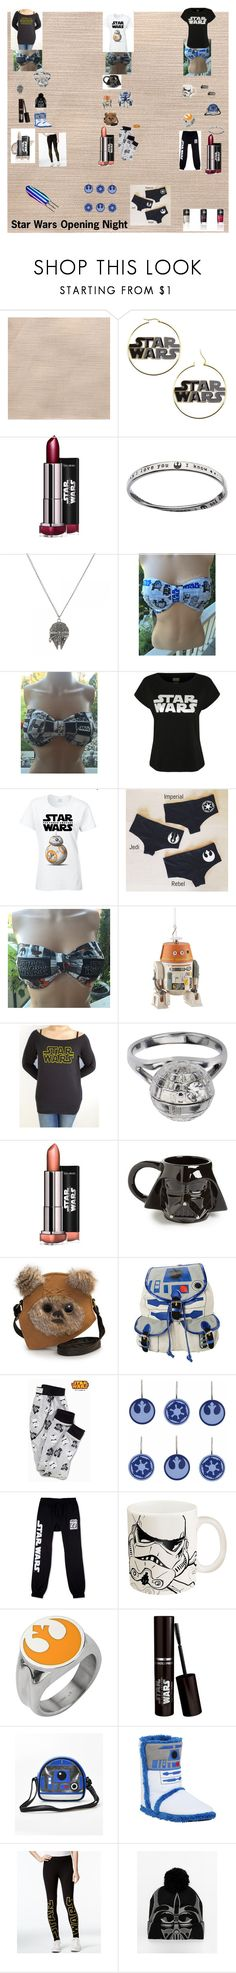 """""""Star Wars Opening Night"""" by pink0124 ❤ liked on Polyvore featuring George, Disney, Vandor, Loungefly, R2, JEM, Zak! Designs, Hybrid and ASOS"""